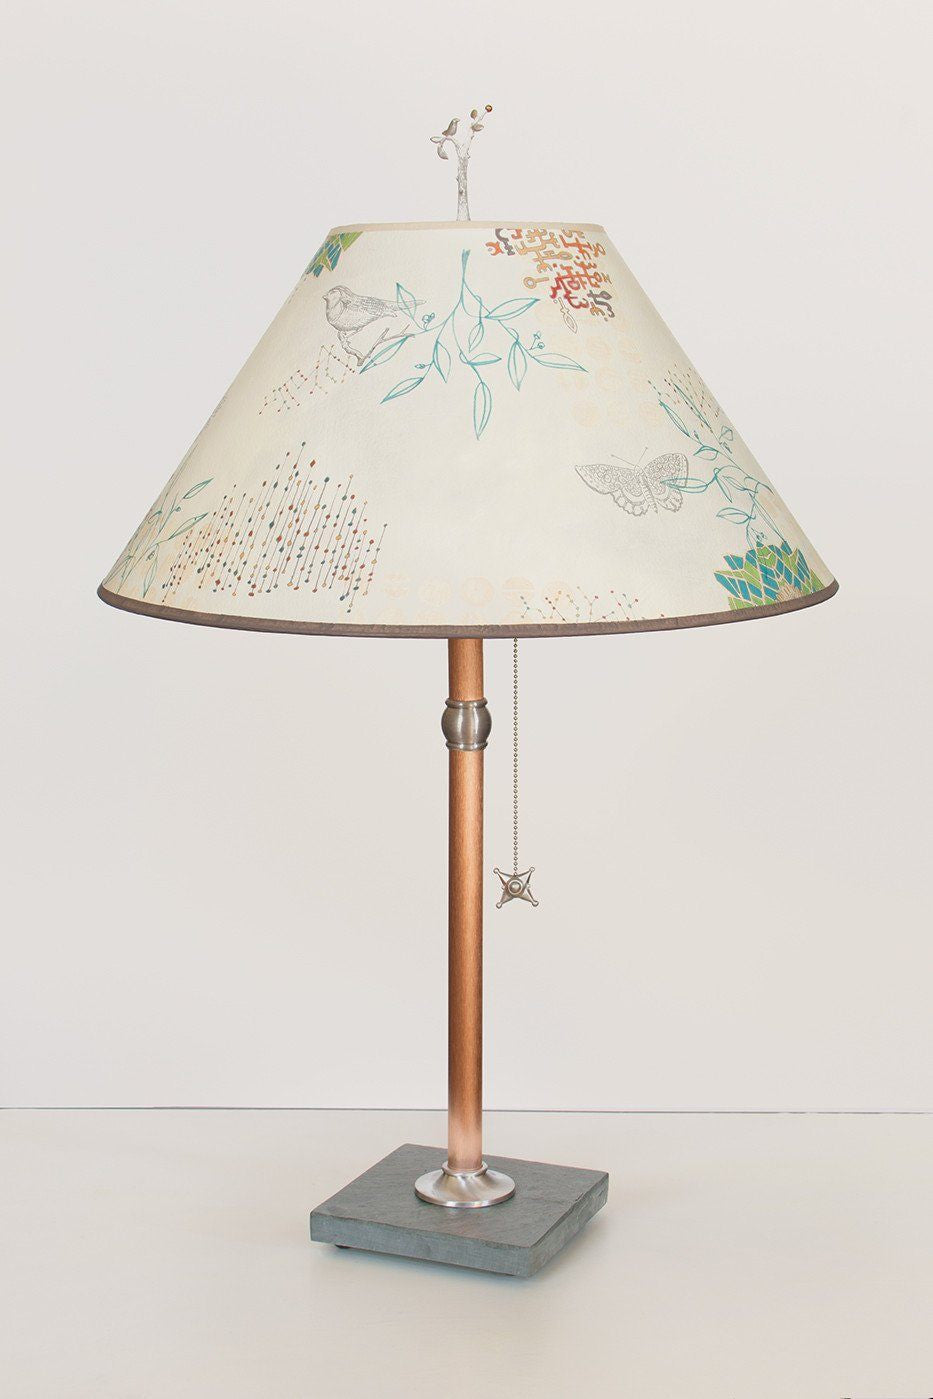 Copper Table Lamp on Vermont Slate with Large Conical Shade in Ecru Journey